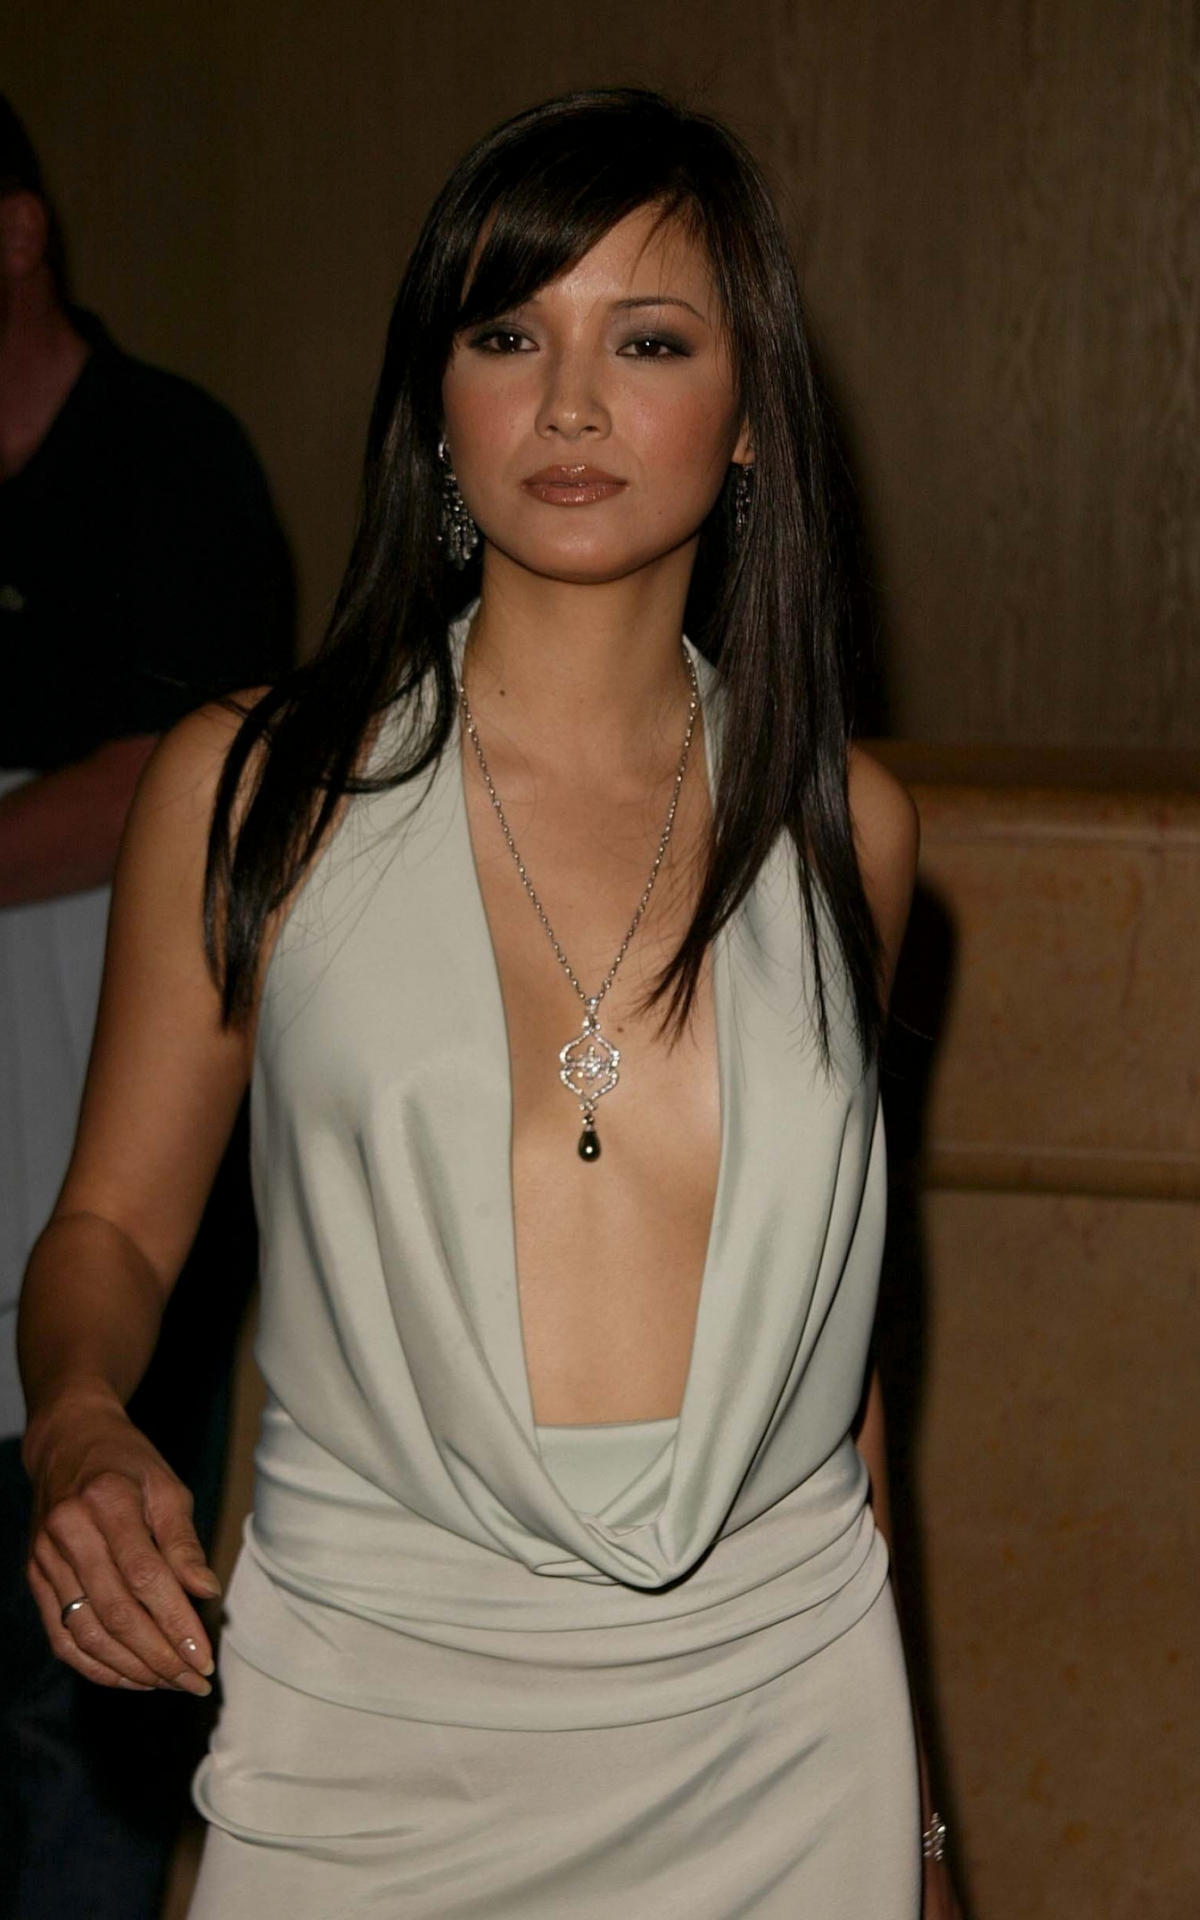 Free Download Photo Kelly Hu Scorpion King 1440x2153 For Your